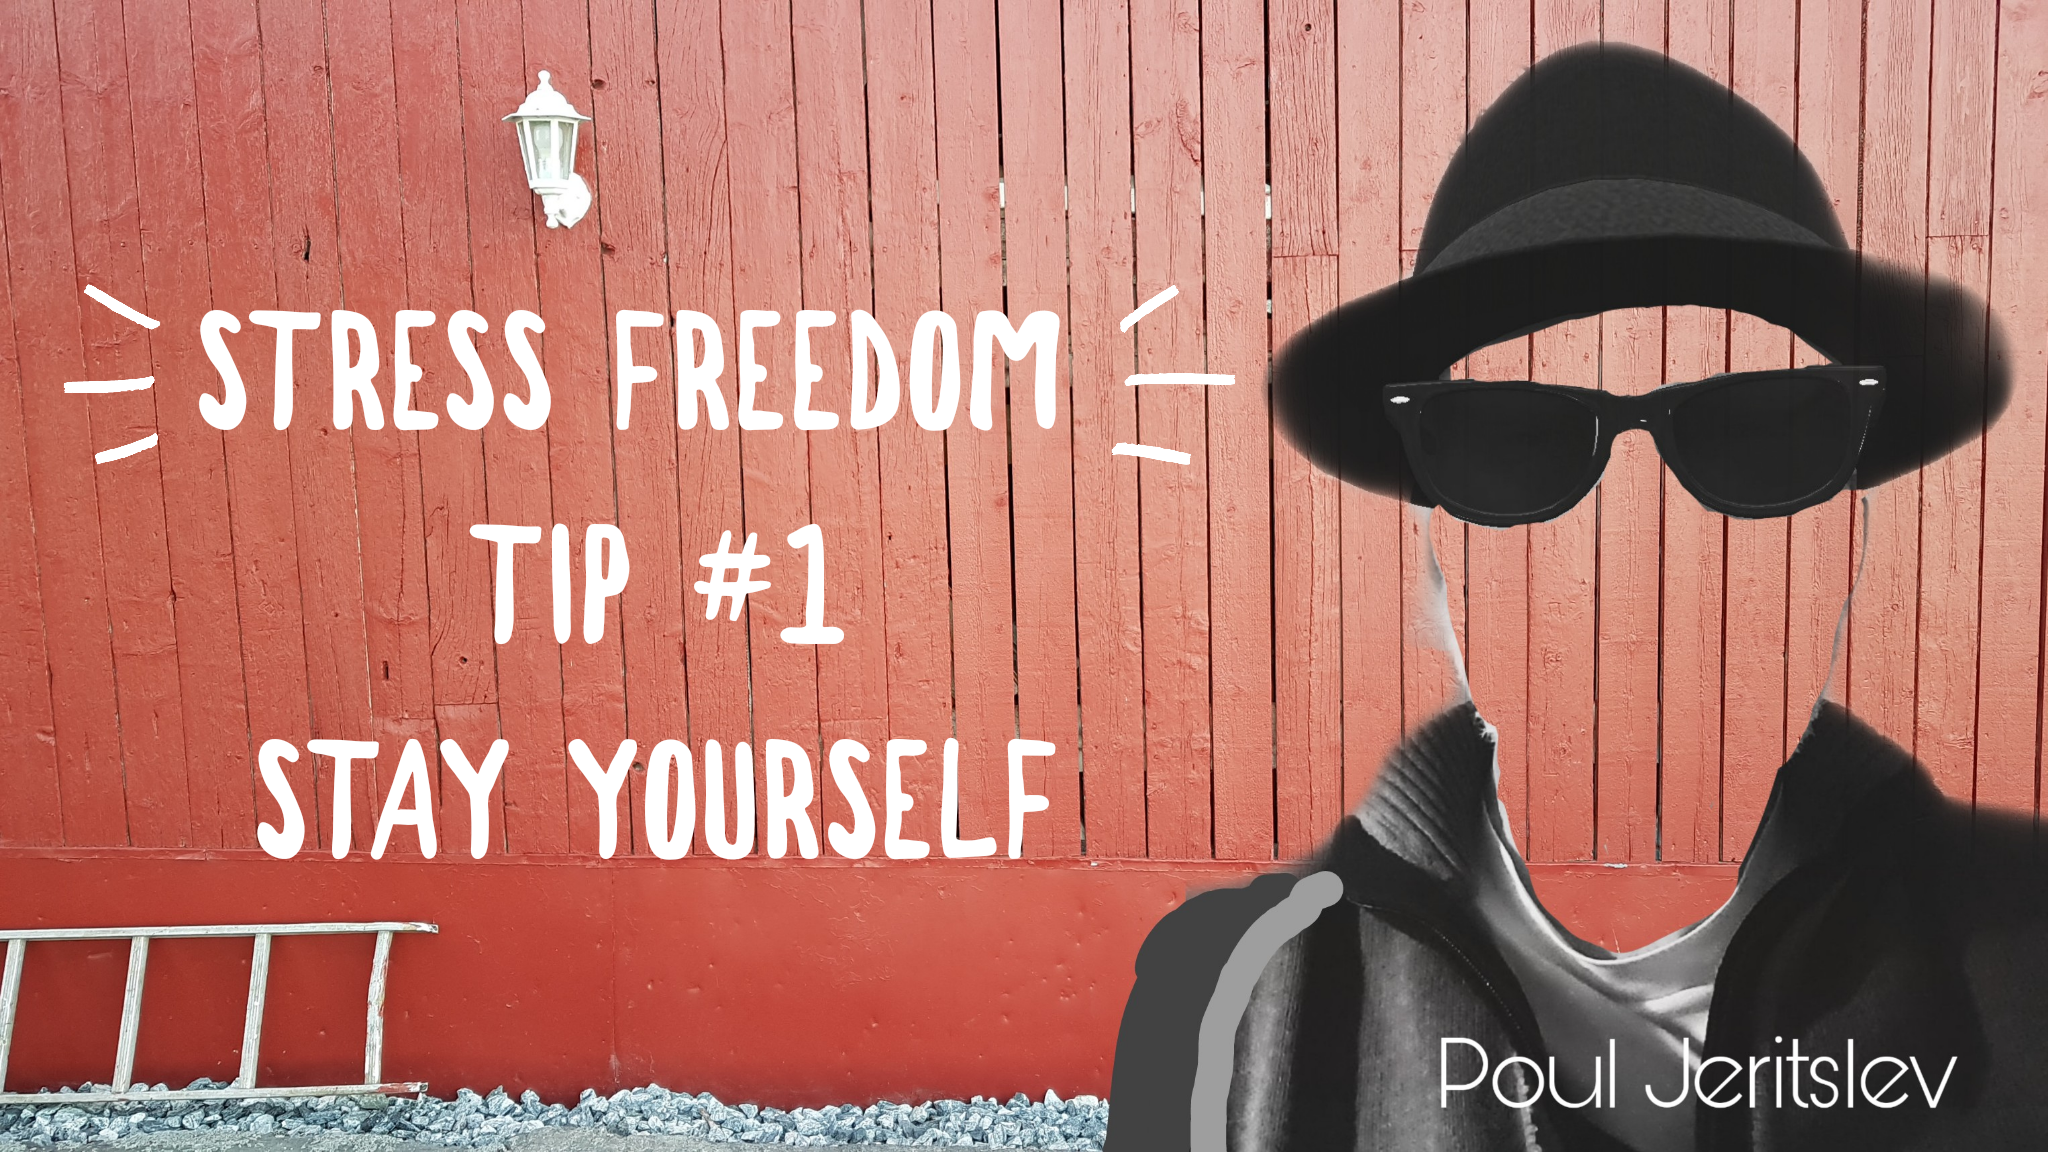 Stress Freedom TIP #1